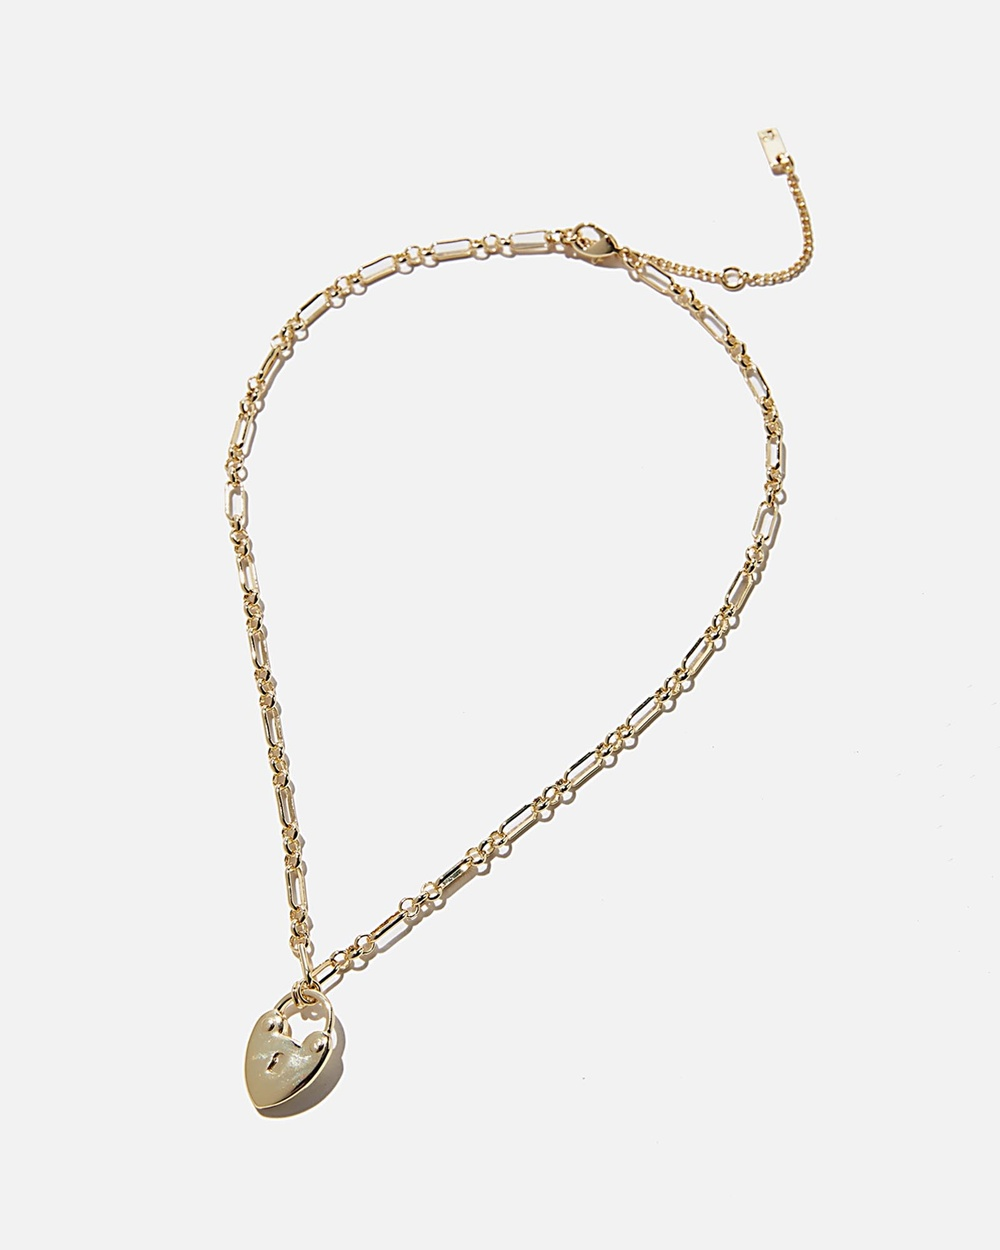 Rubi Premium Forever Necklace Jewellery Gold Plated Heart Padlock